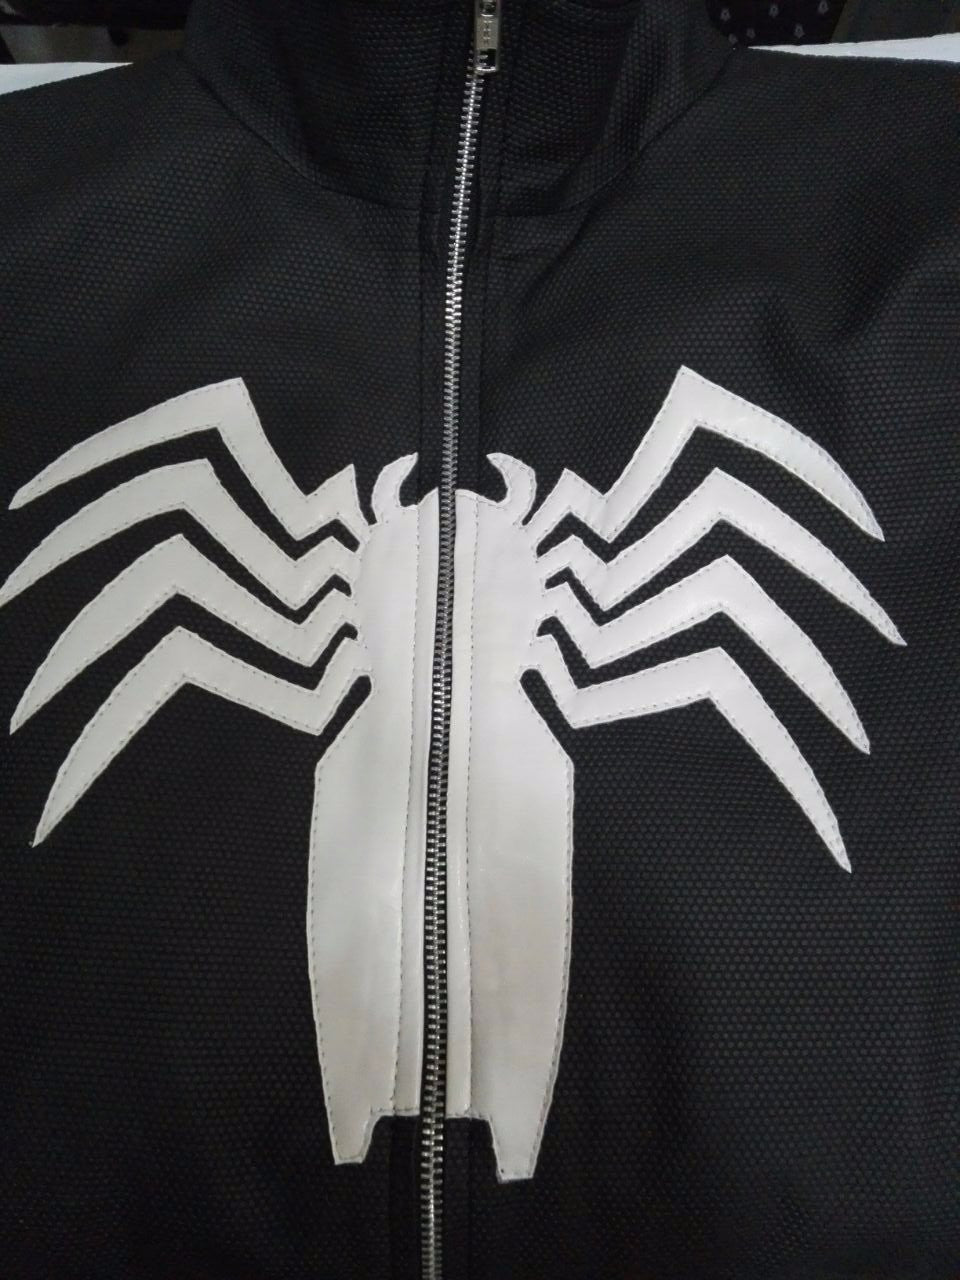 Womens Venom Logo Spiderman Neoprene Windbreaker Jacket Black